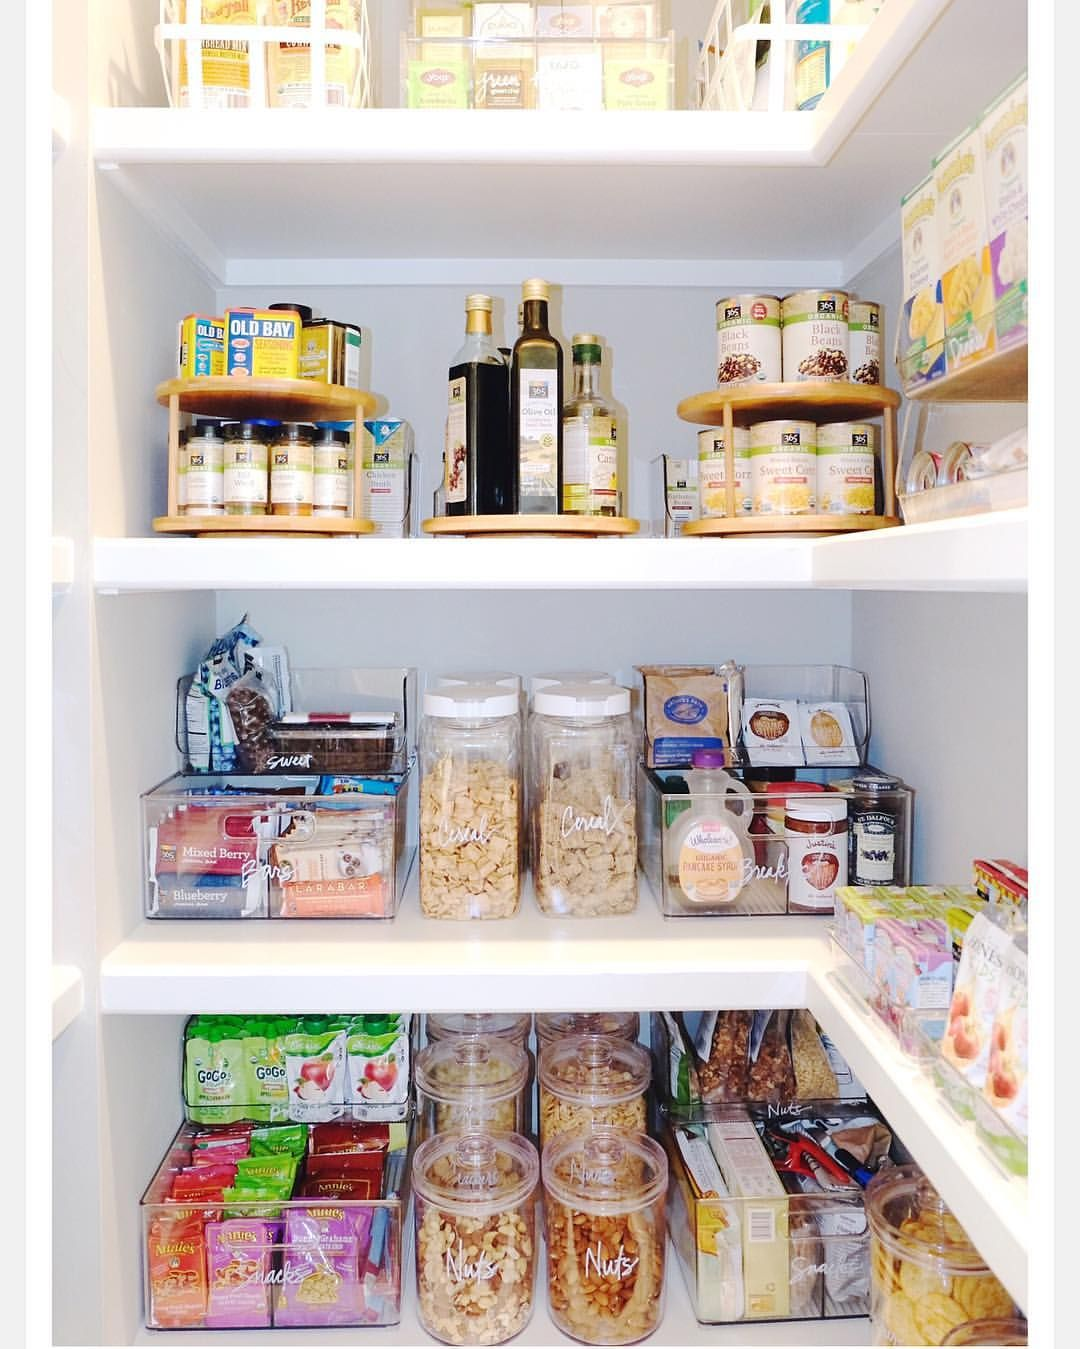 """Interior Design Inspiration on Instagram: """"It's all about organization in this pantry! Via @the_home_edit """""""